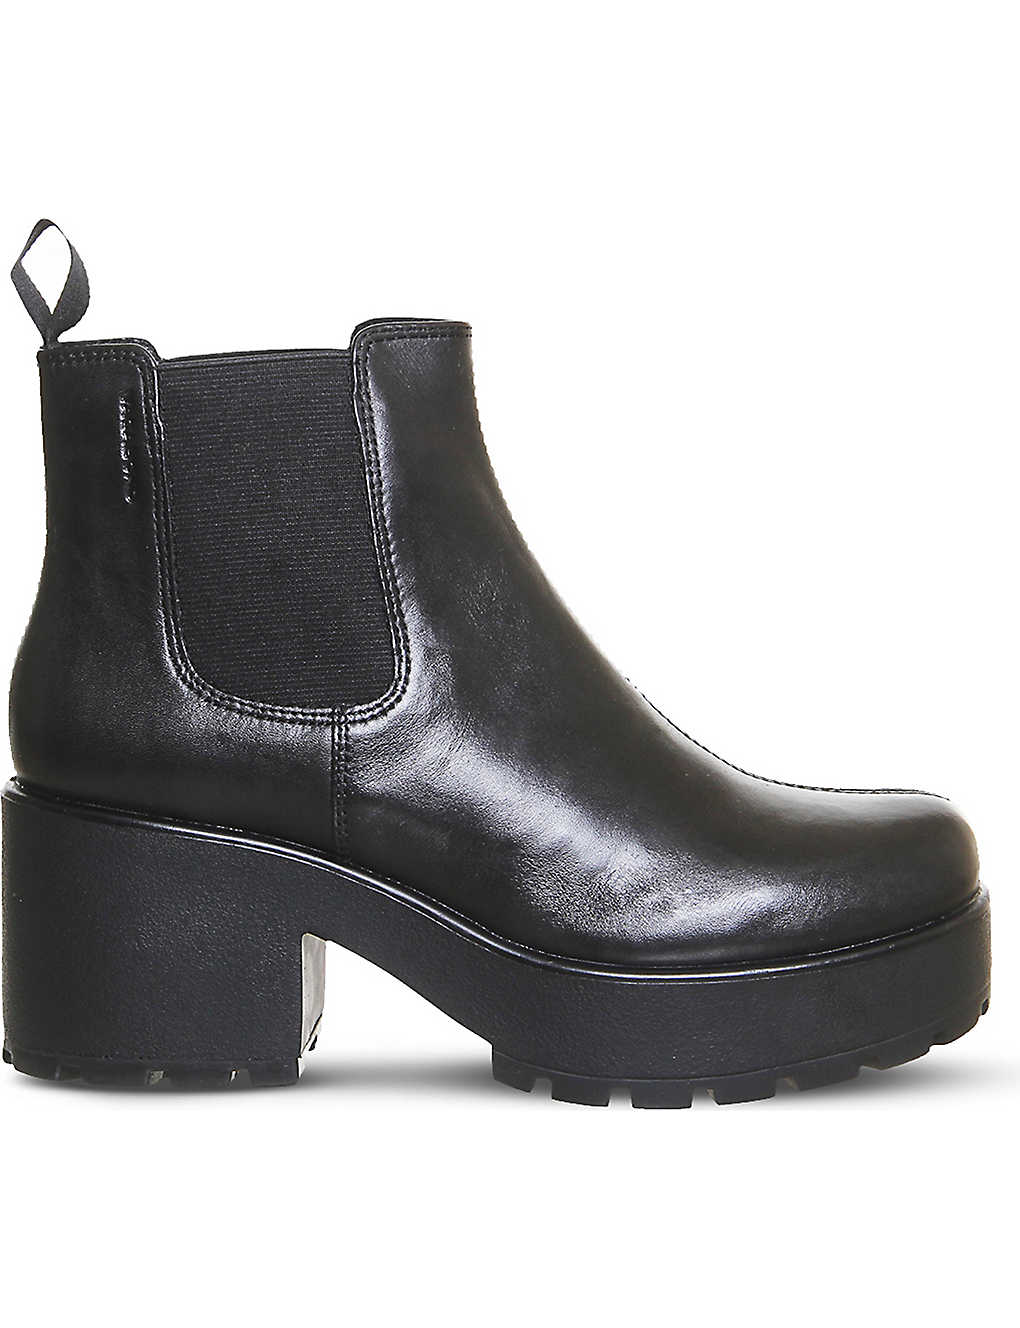 761e107e84 Dioon chunky leather Chelsea boots - Black leather ...